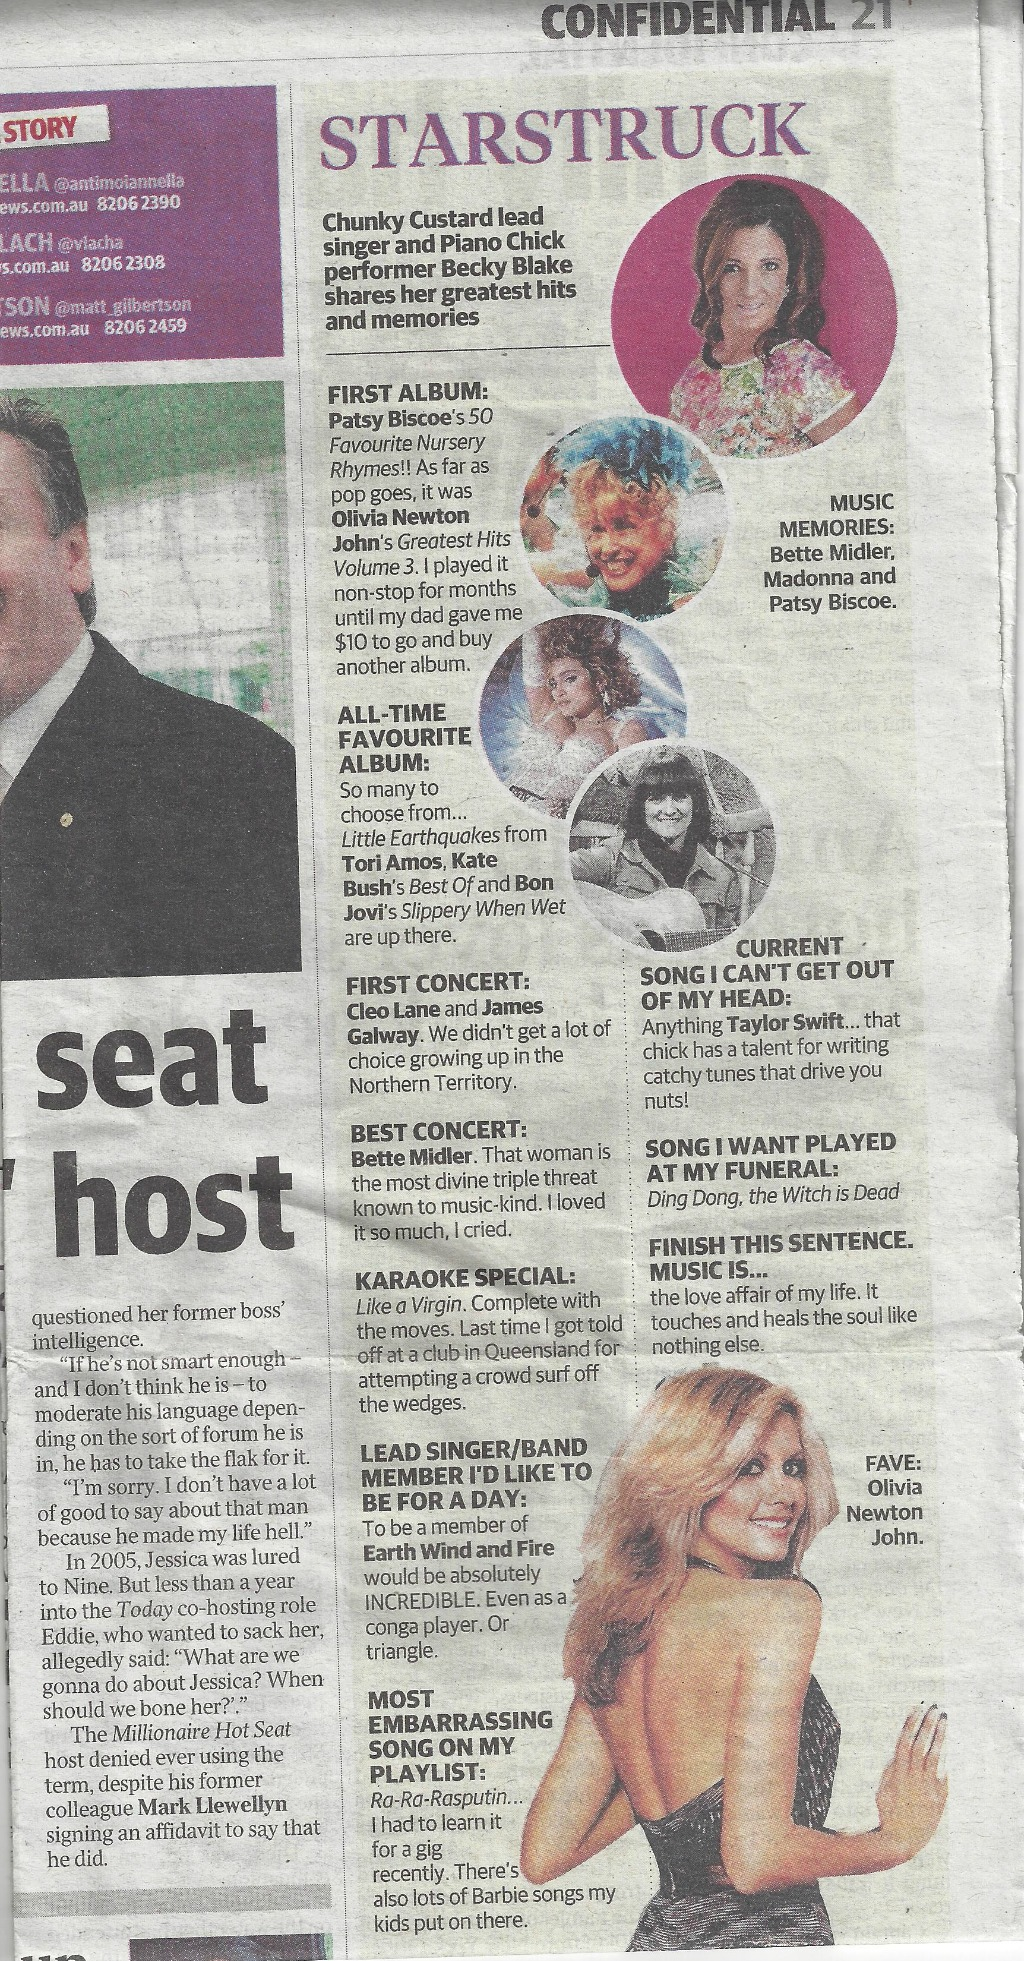 """""""Starstruck"""" Interview, Adelaide Confidential in The Advertiser 11/08/15"""